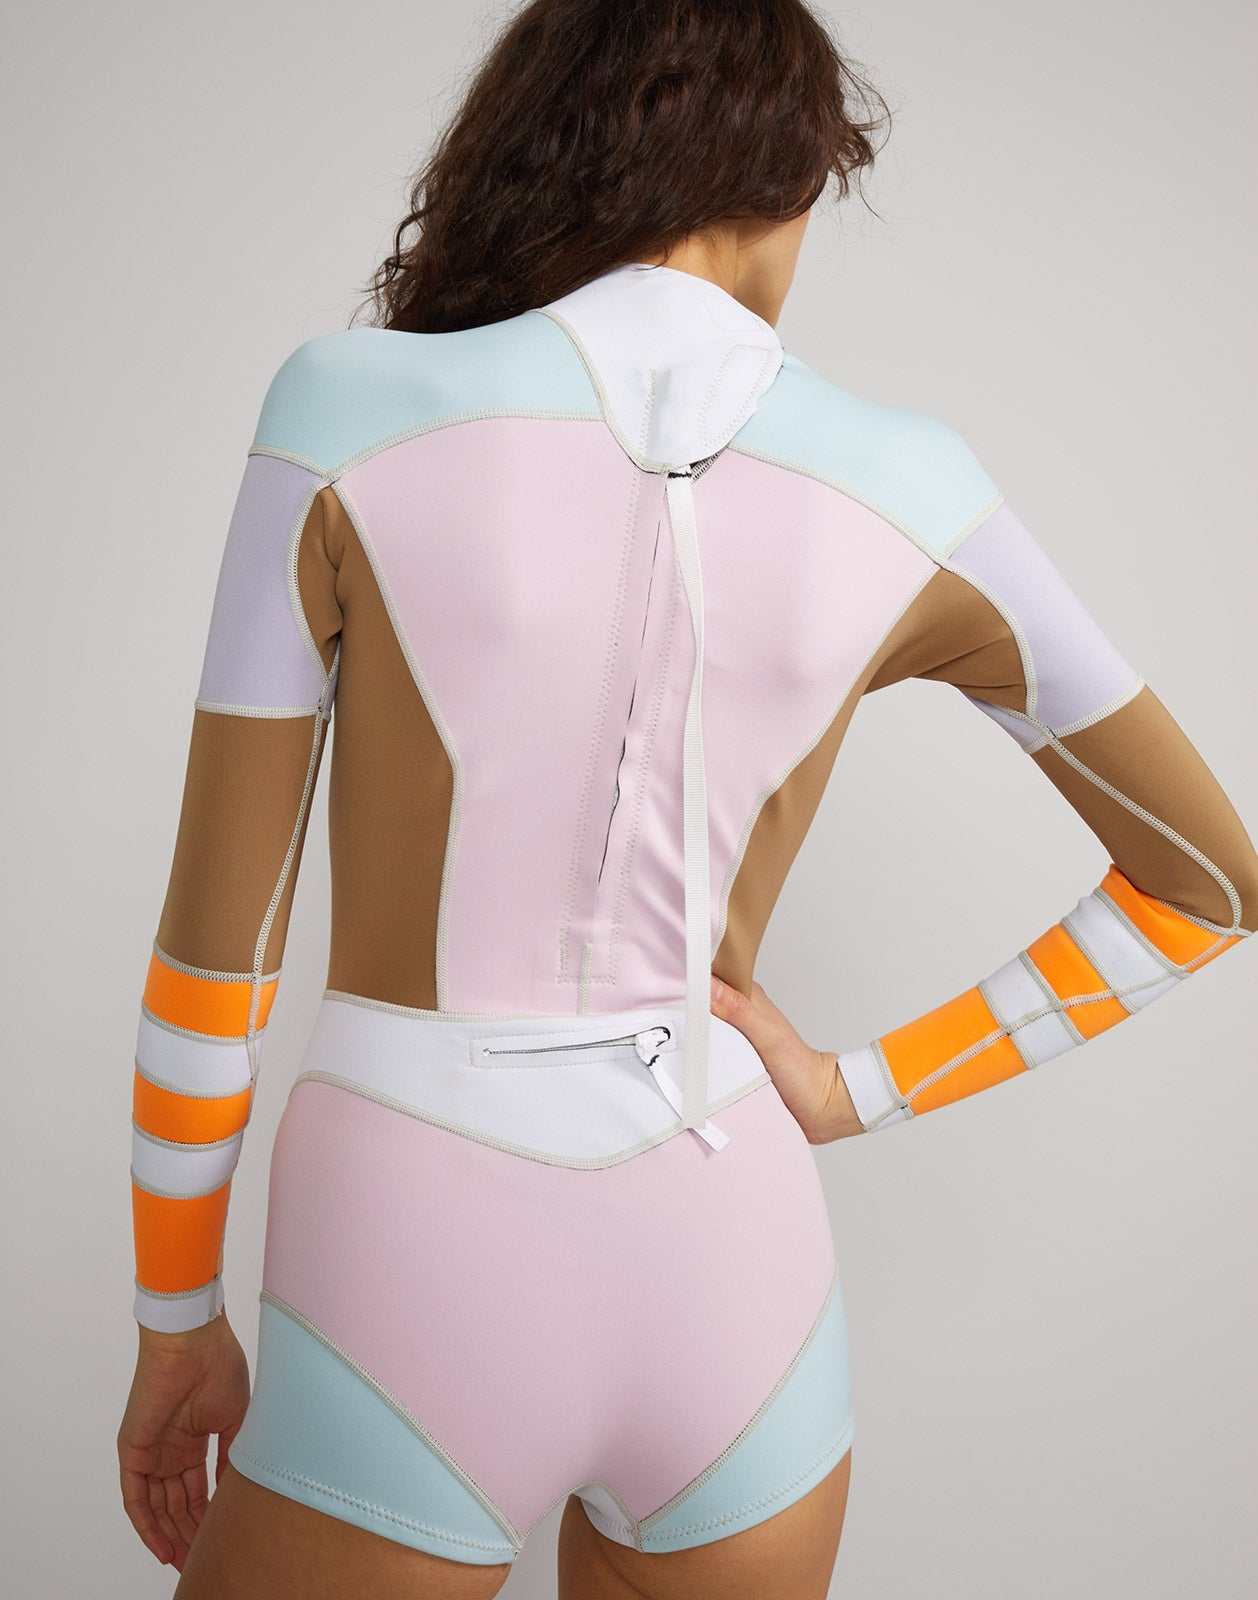 Back view of Jordan colorblock Neoprene wetsuit